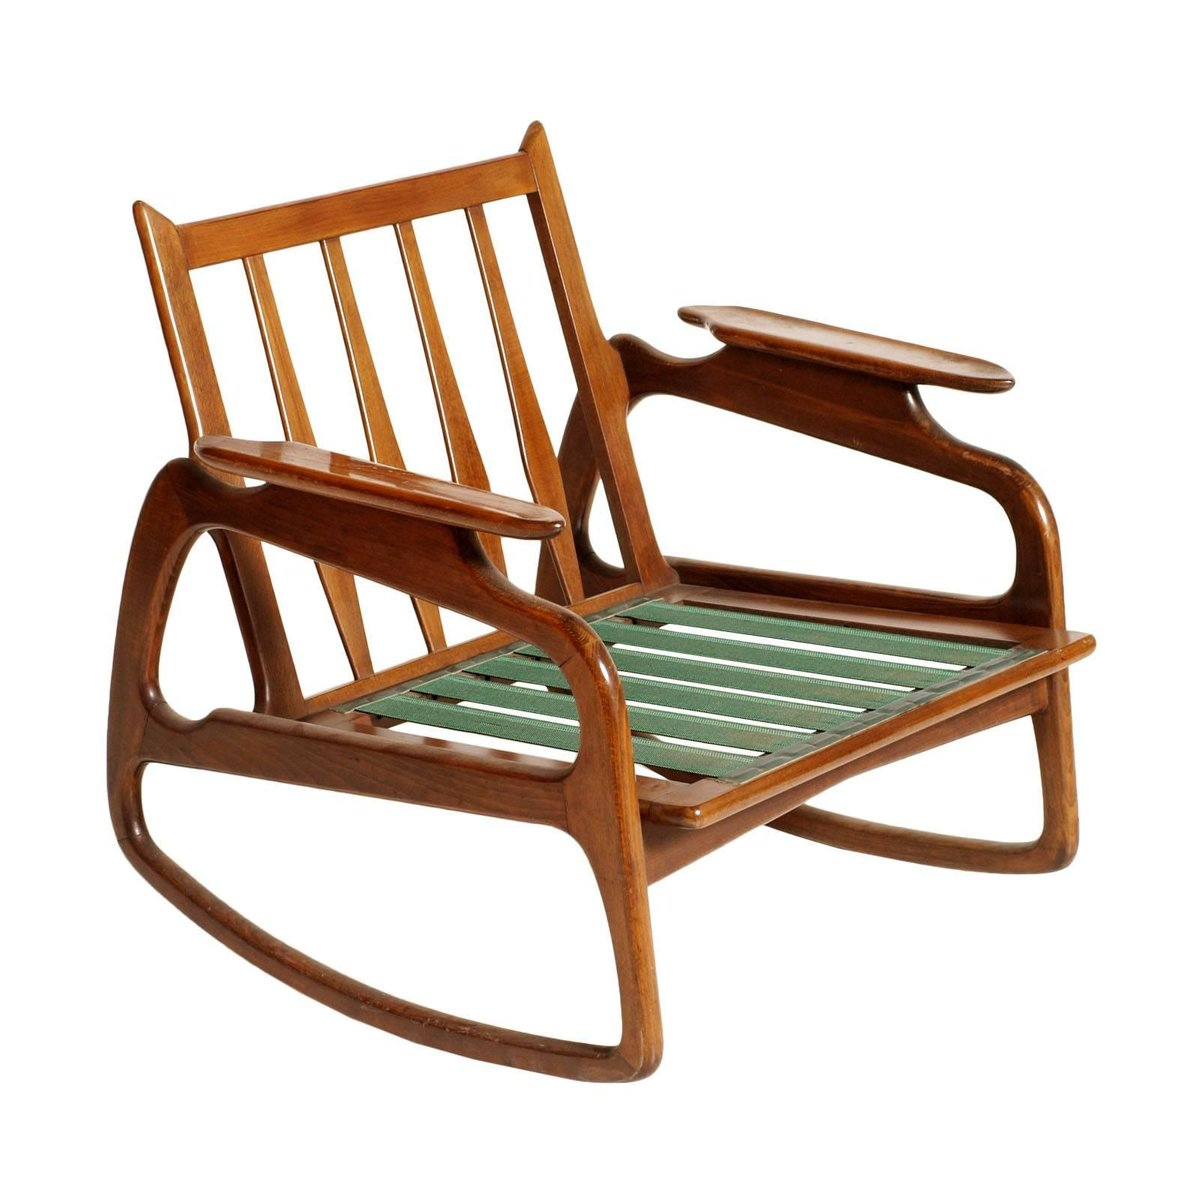 Walnut Rocking Chair by Adrian Pearsall 1950s for sale at